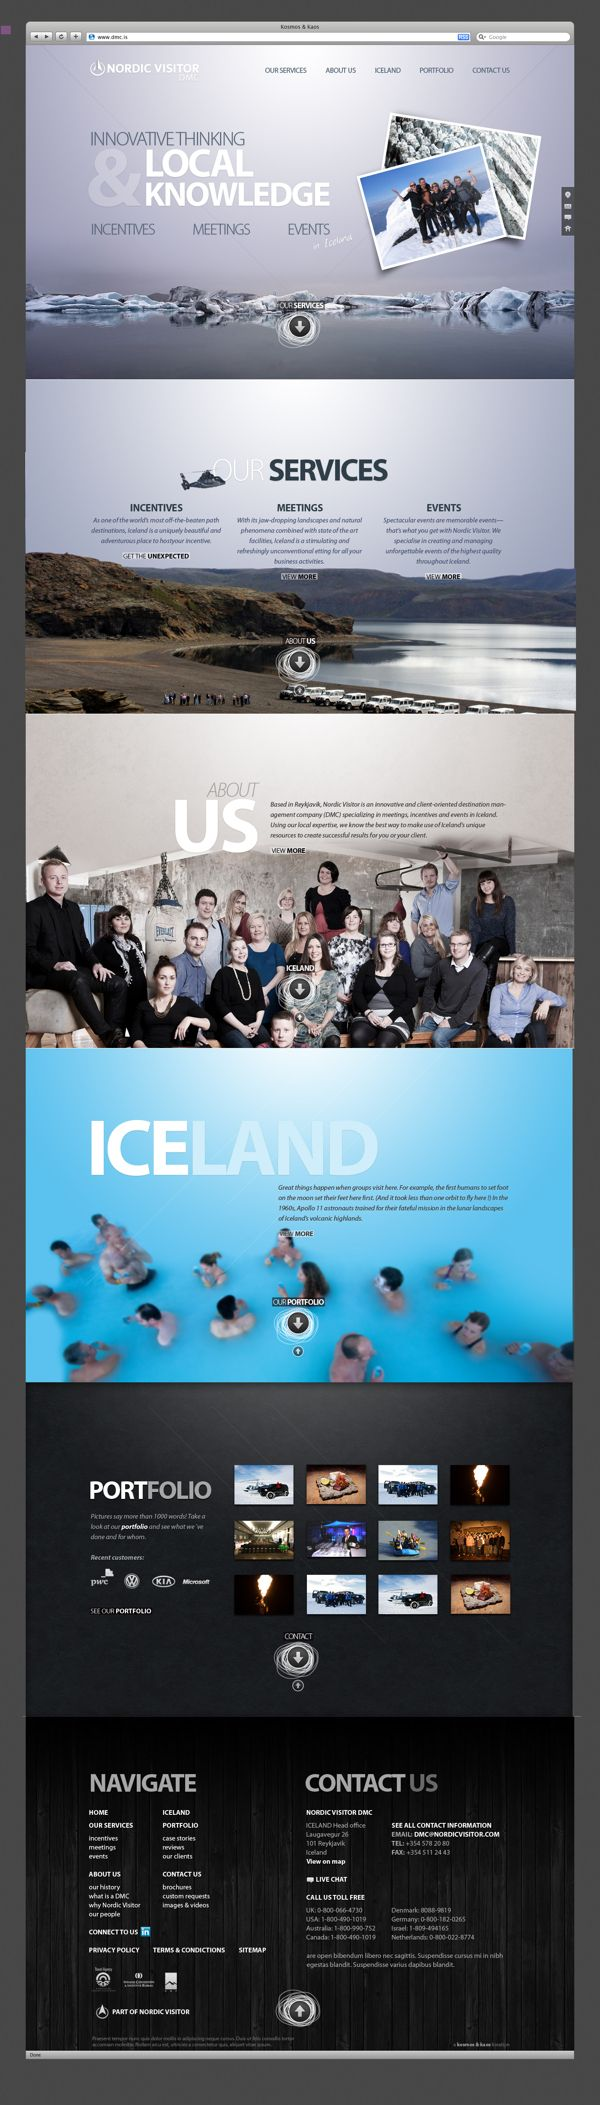 DMC - Nordic Visitor by Kosmos & Kaos, via Behance